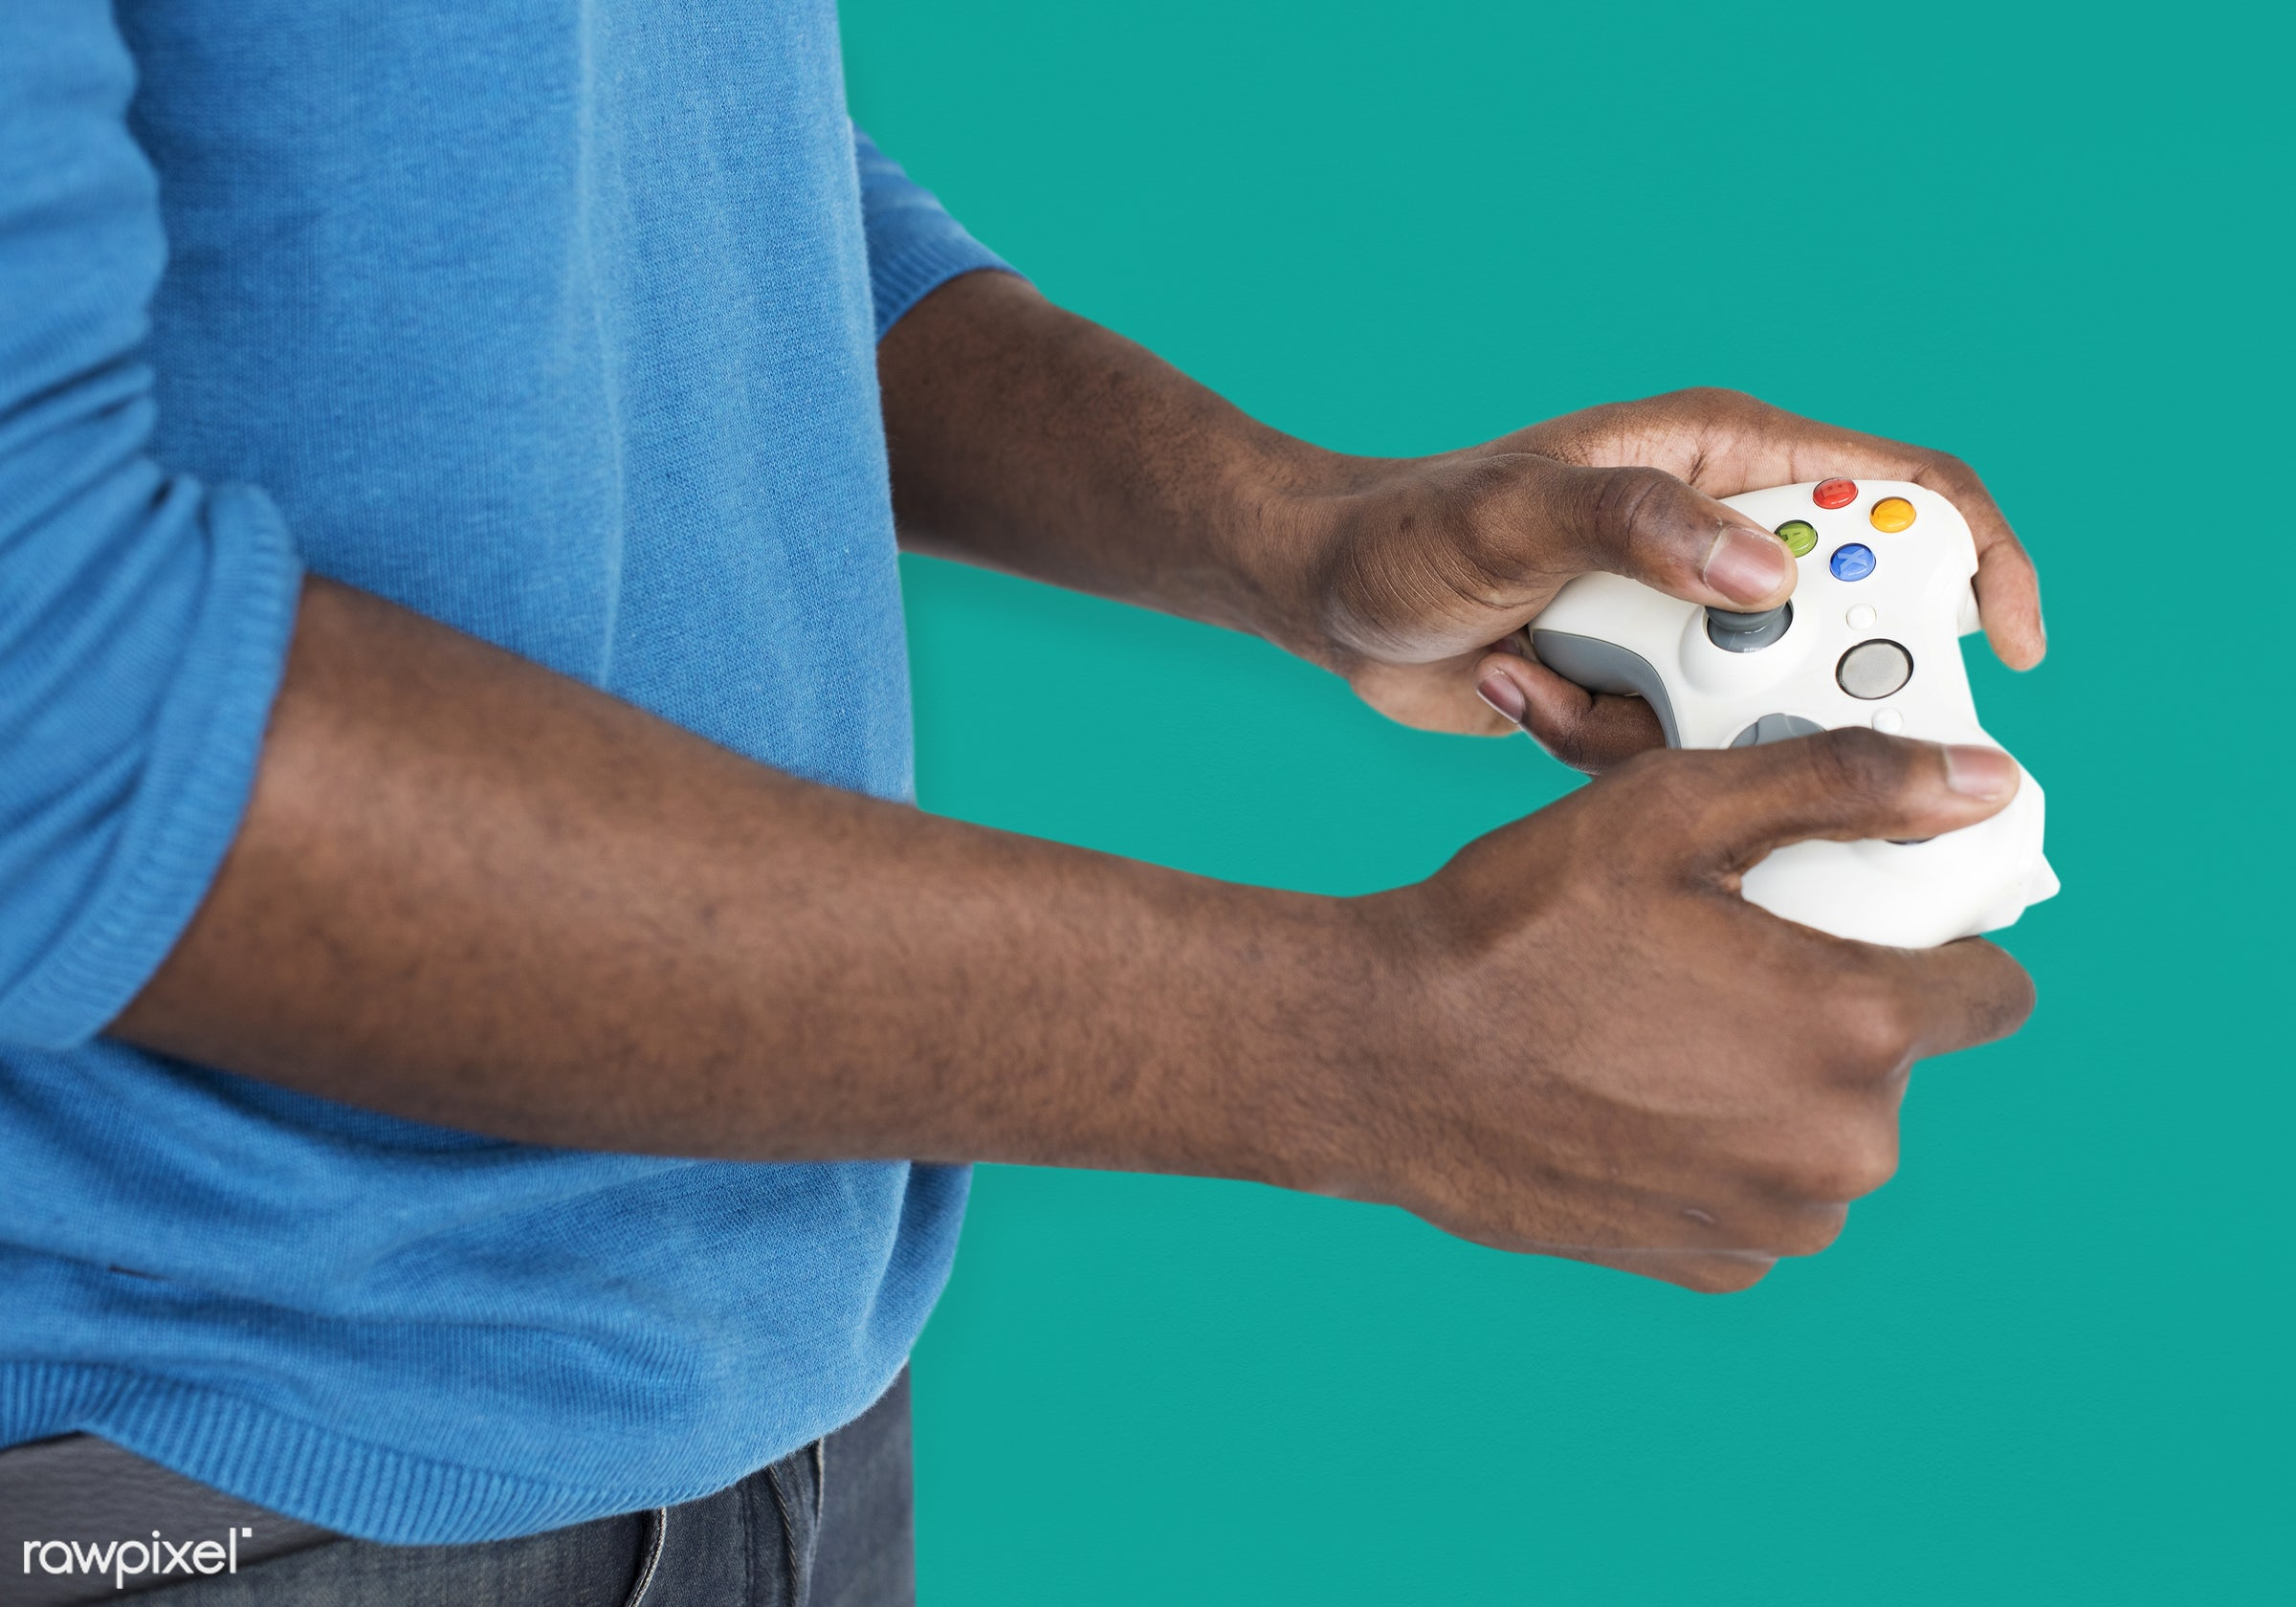 expression, person, technology, gaming, recreation, people, man, activity, black, isolated, joystick, connection, game...